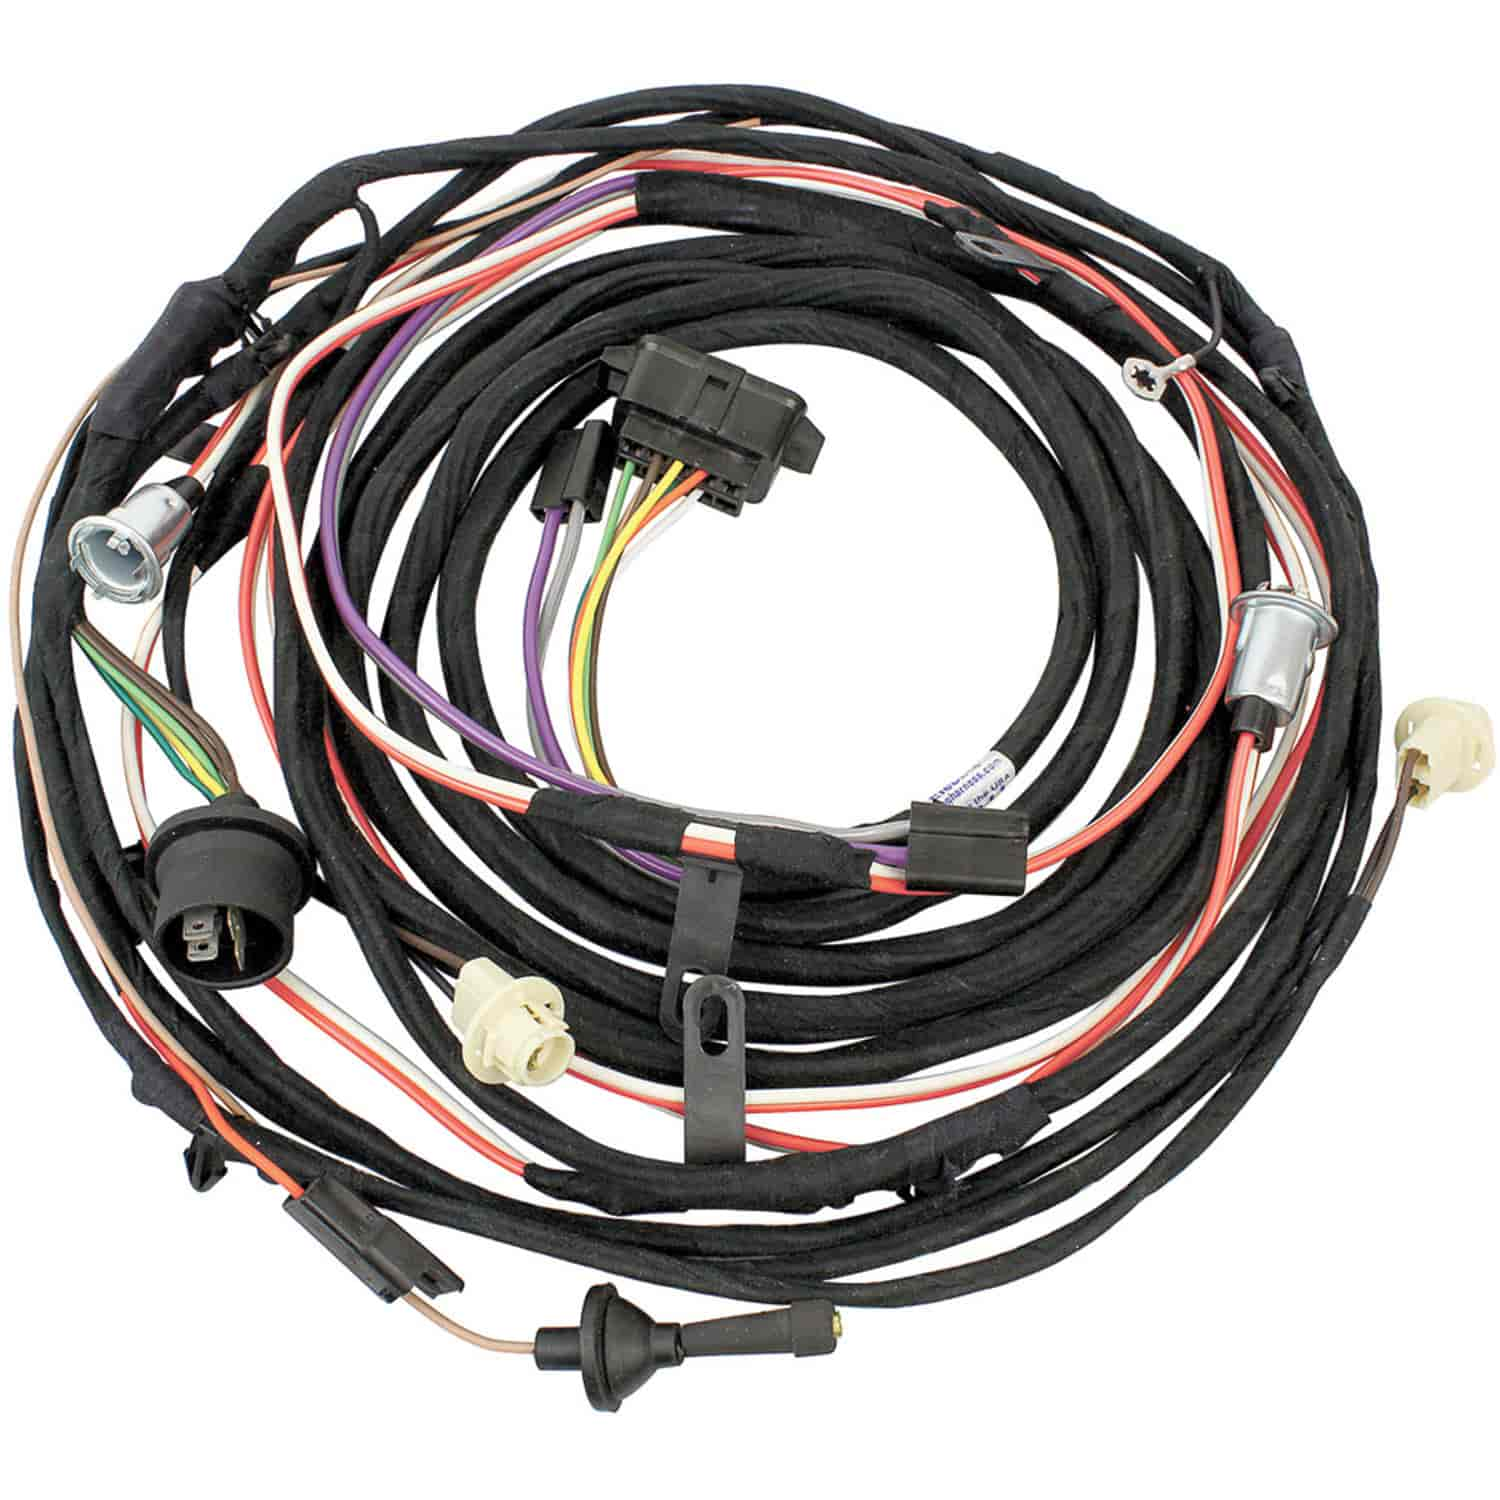 hight resolution of restoparts wiring harness rear light intermediate 1969 skylark coupe restoparts 19120